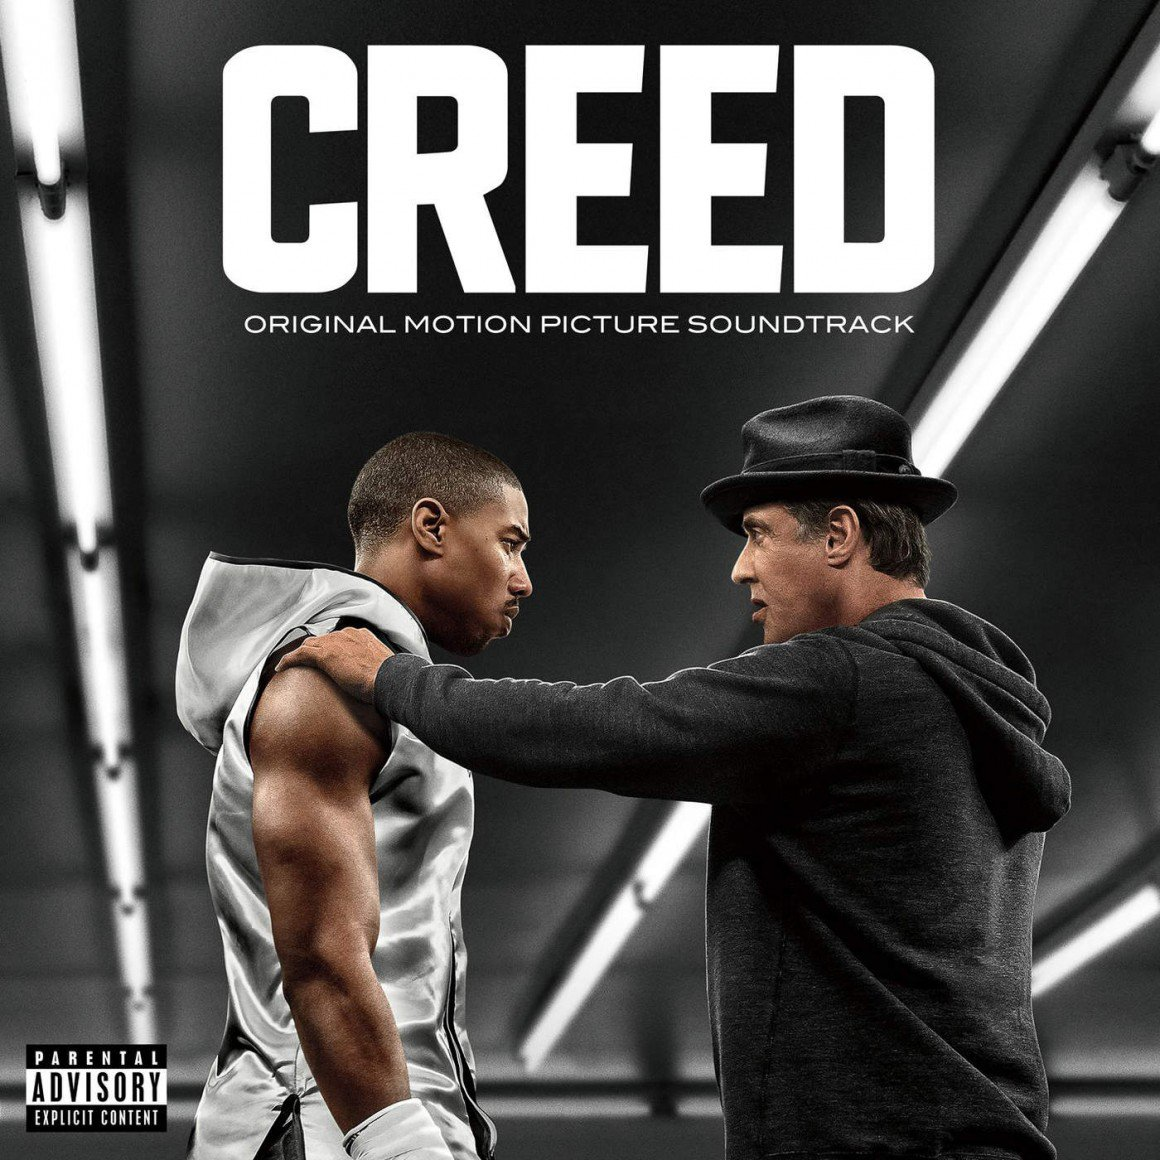 Creed: Original Motion Picture Soundtrack - WaterTower Music